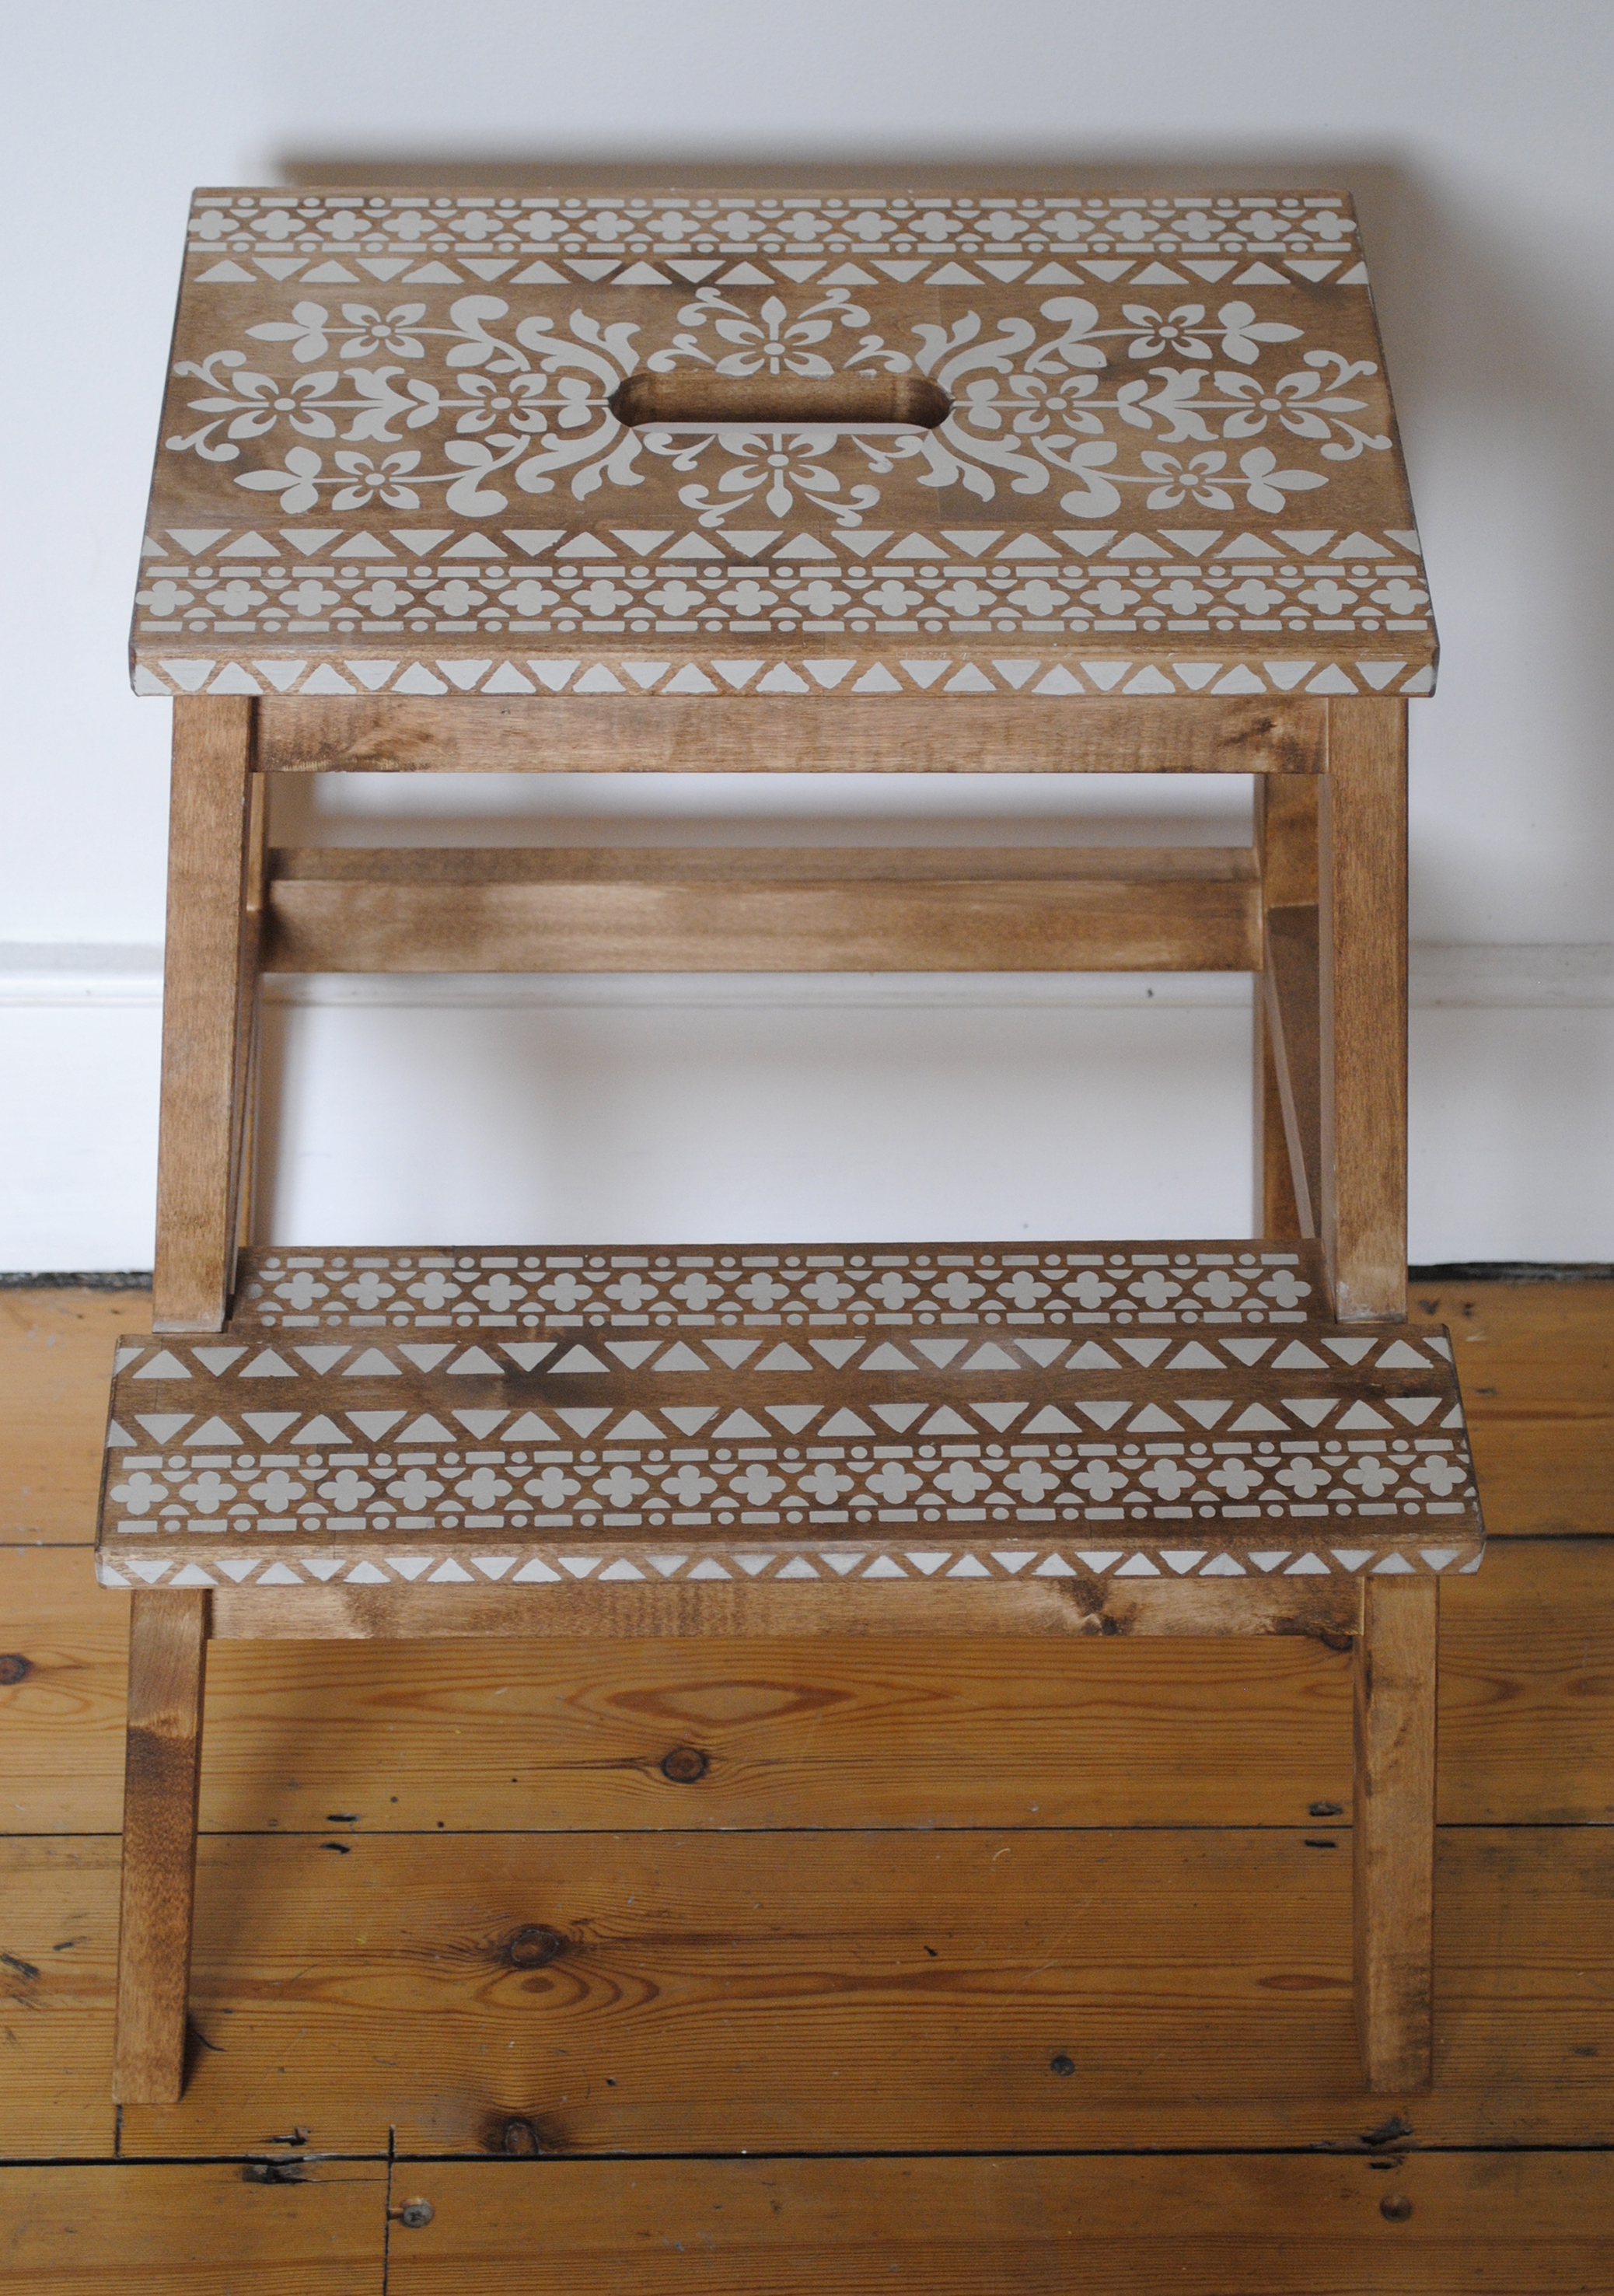 Astonishing Reloved Magazine An Ikea Hack And A Lot Of Stencils Unemploymentrelief Wooden Chair Designs For Living Room Unemploymentrelieforg